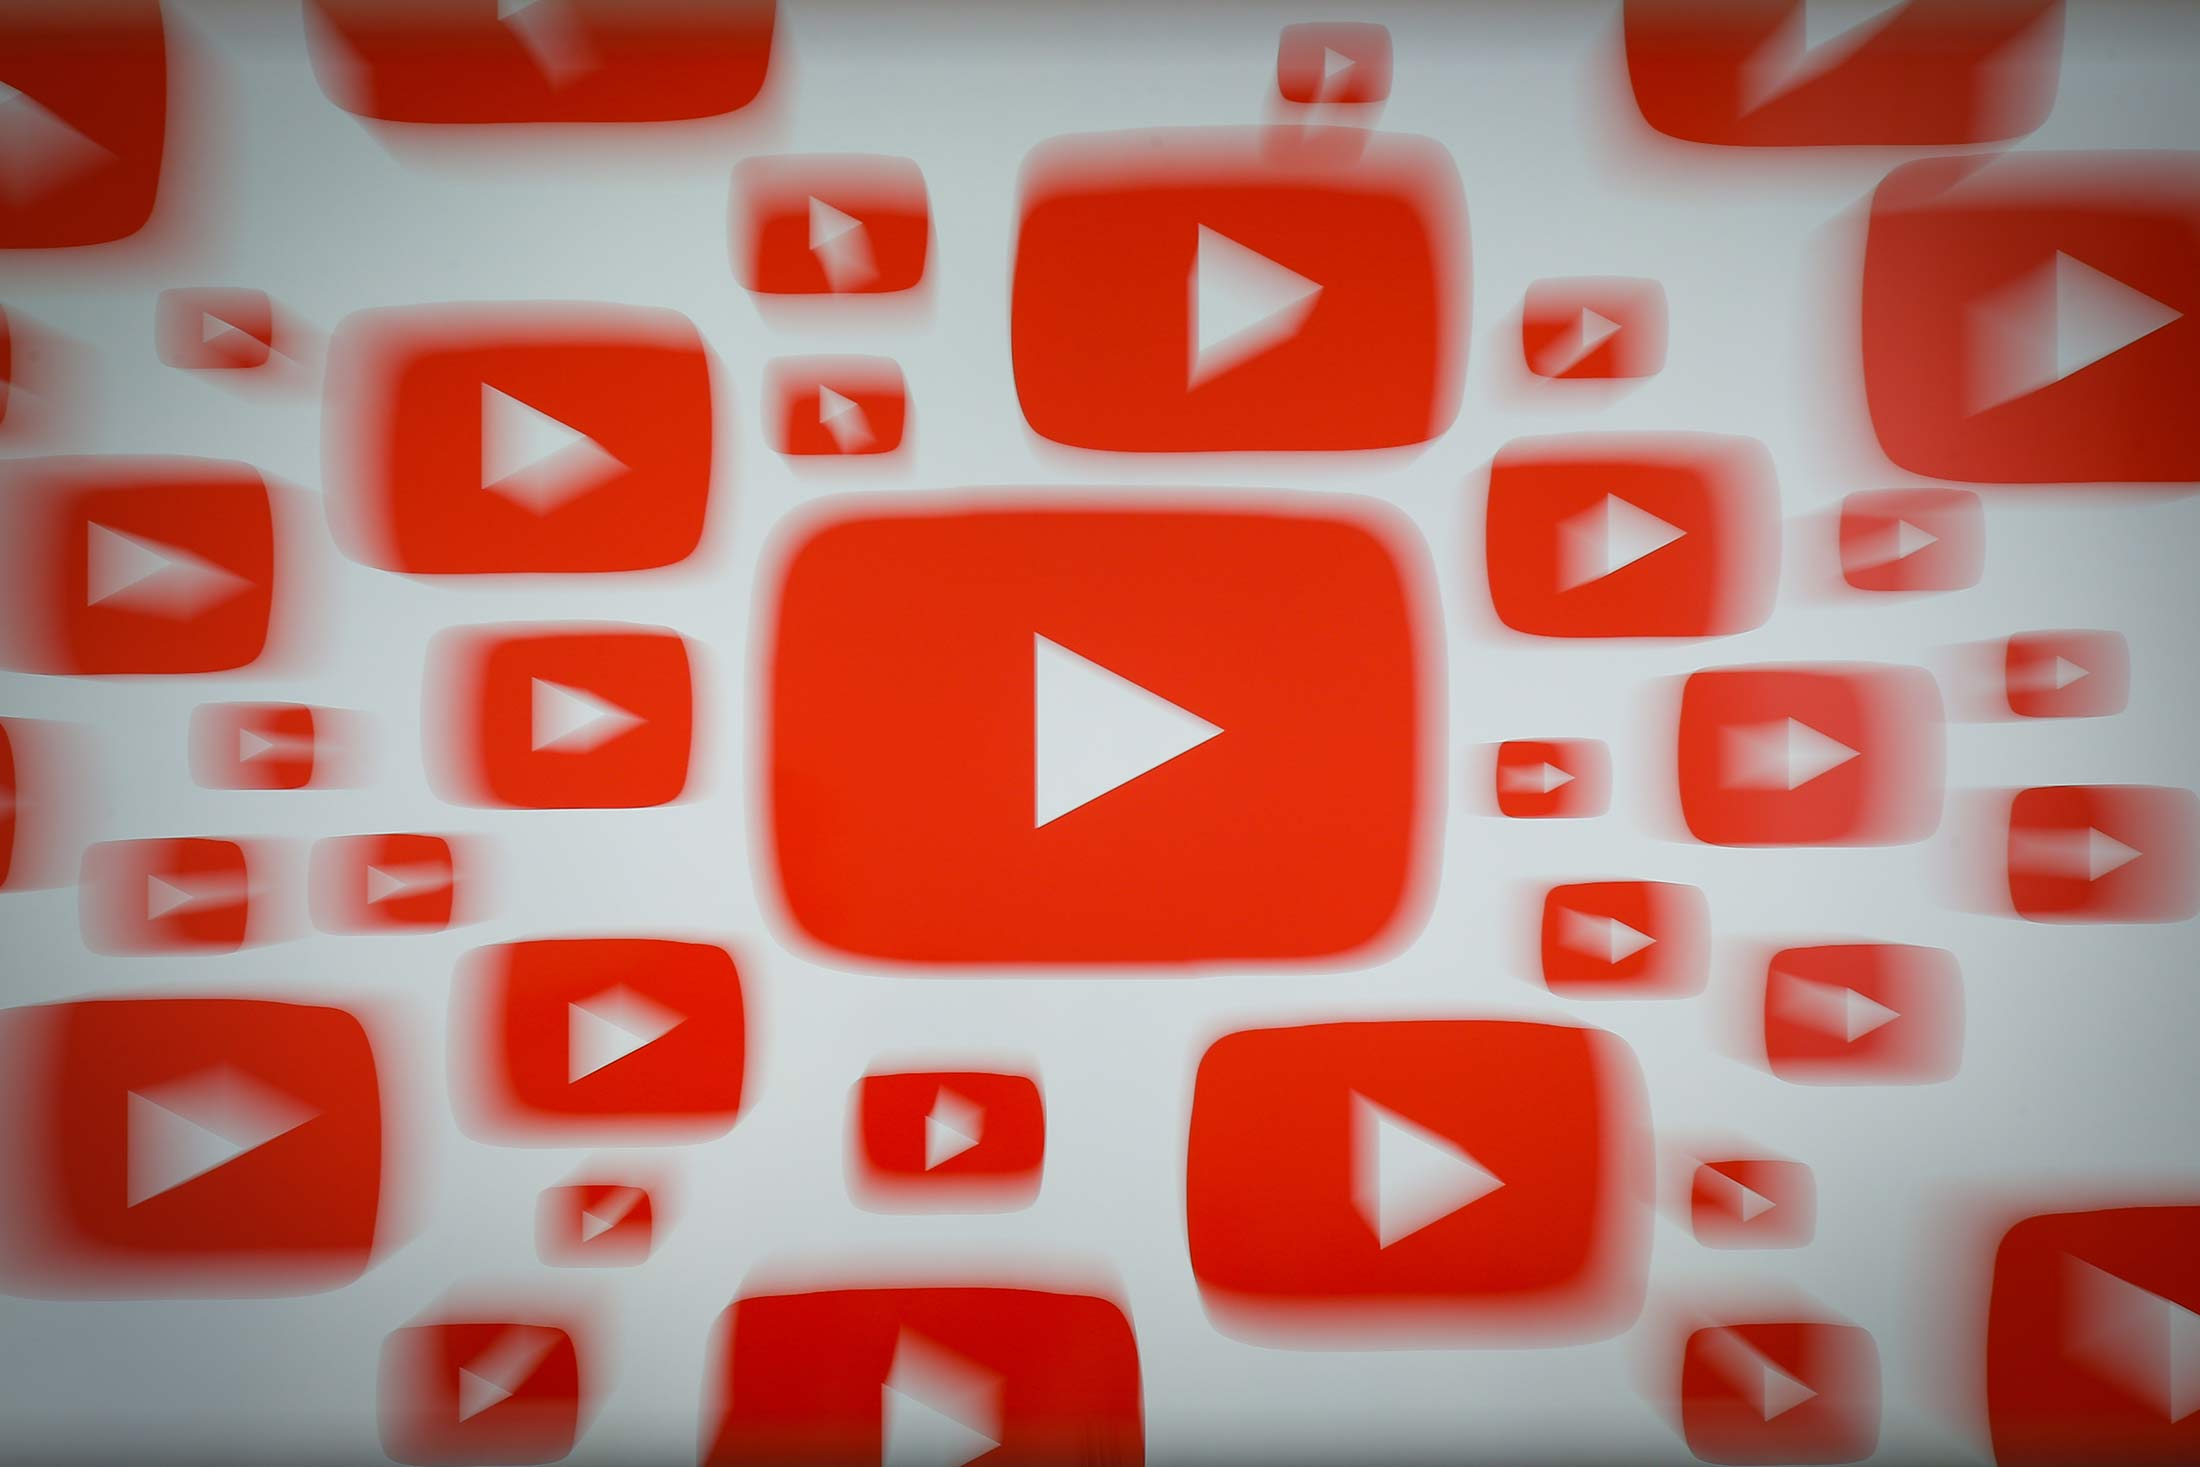 With 40 New Original Shows, YouTube Targets TV's Breadbasket